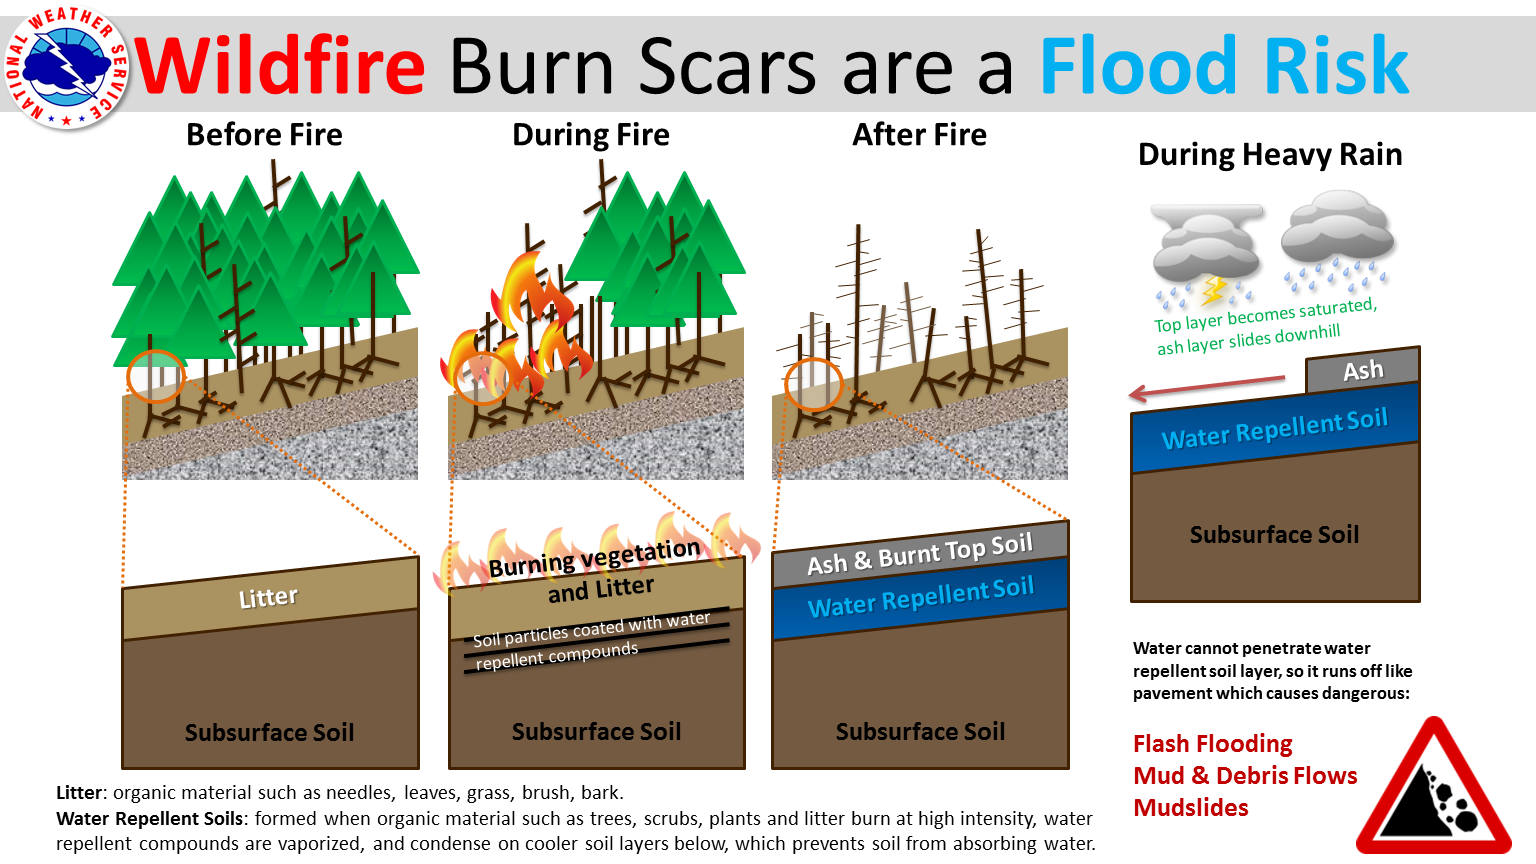 Wildfire Burn Scars are a Flood Risk